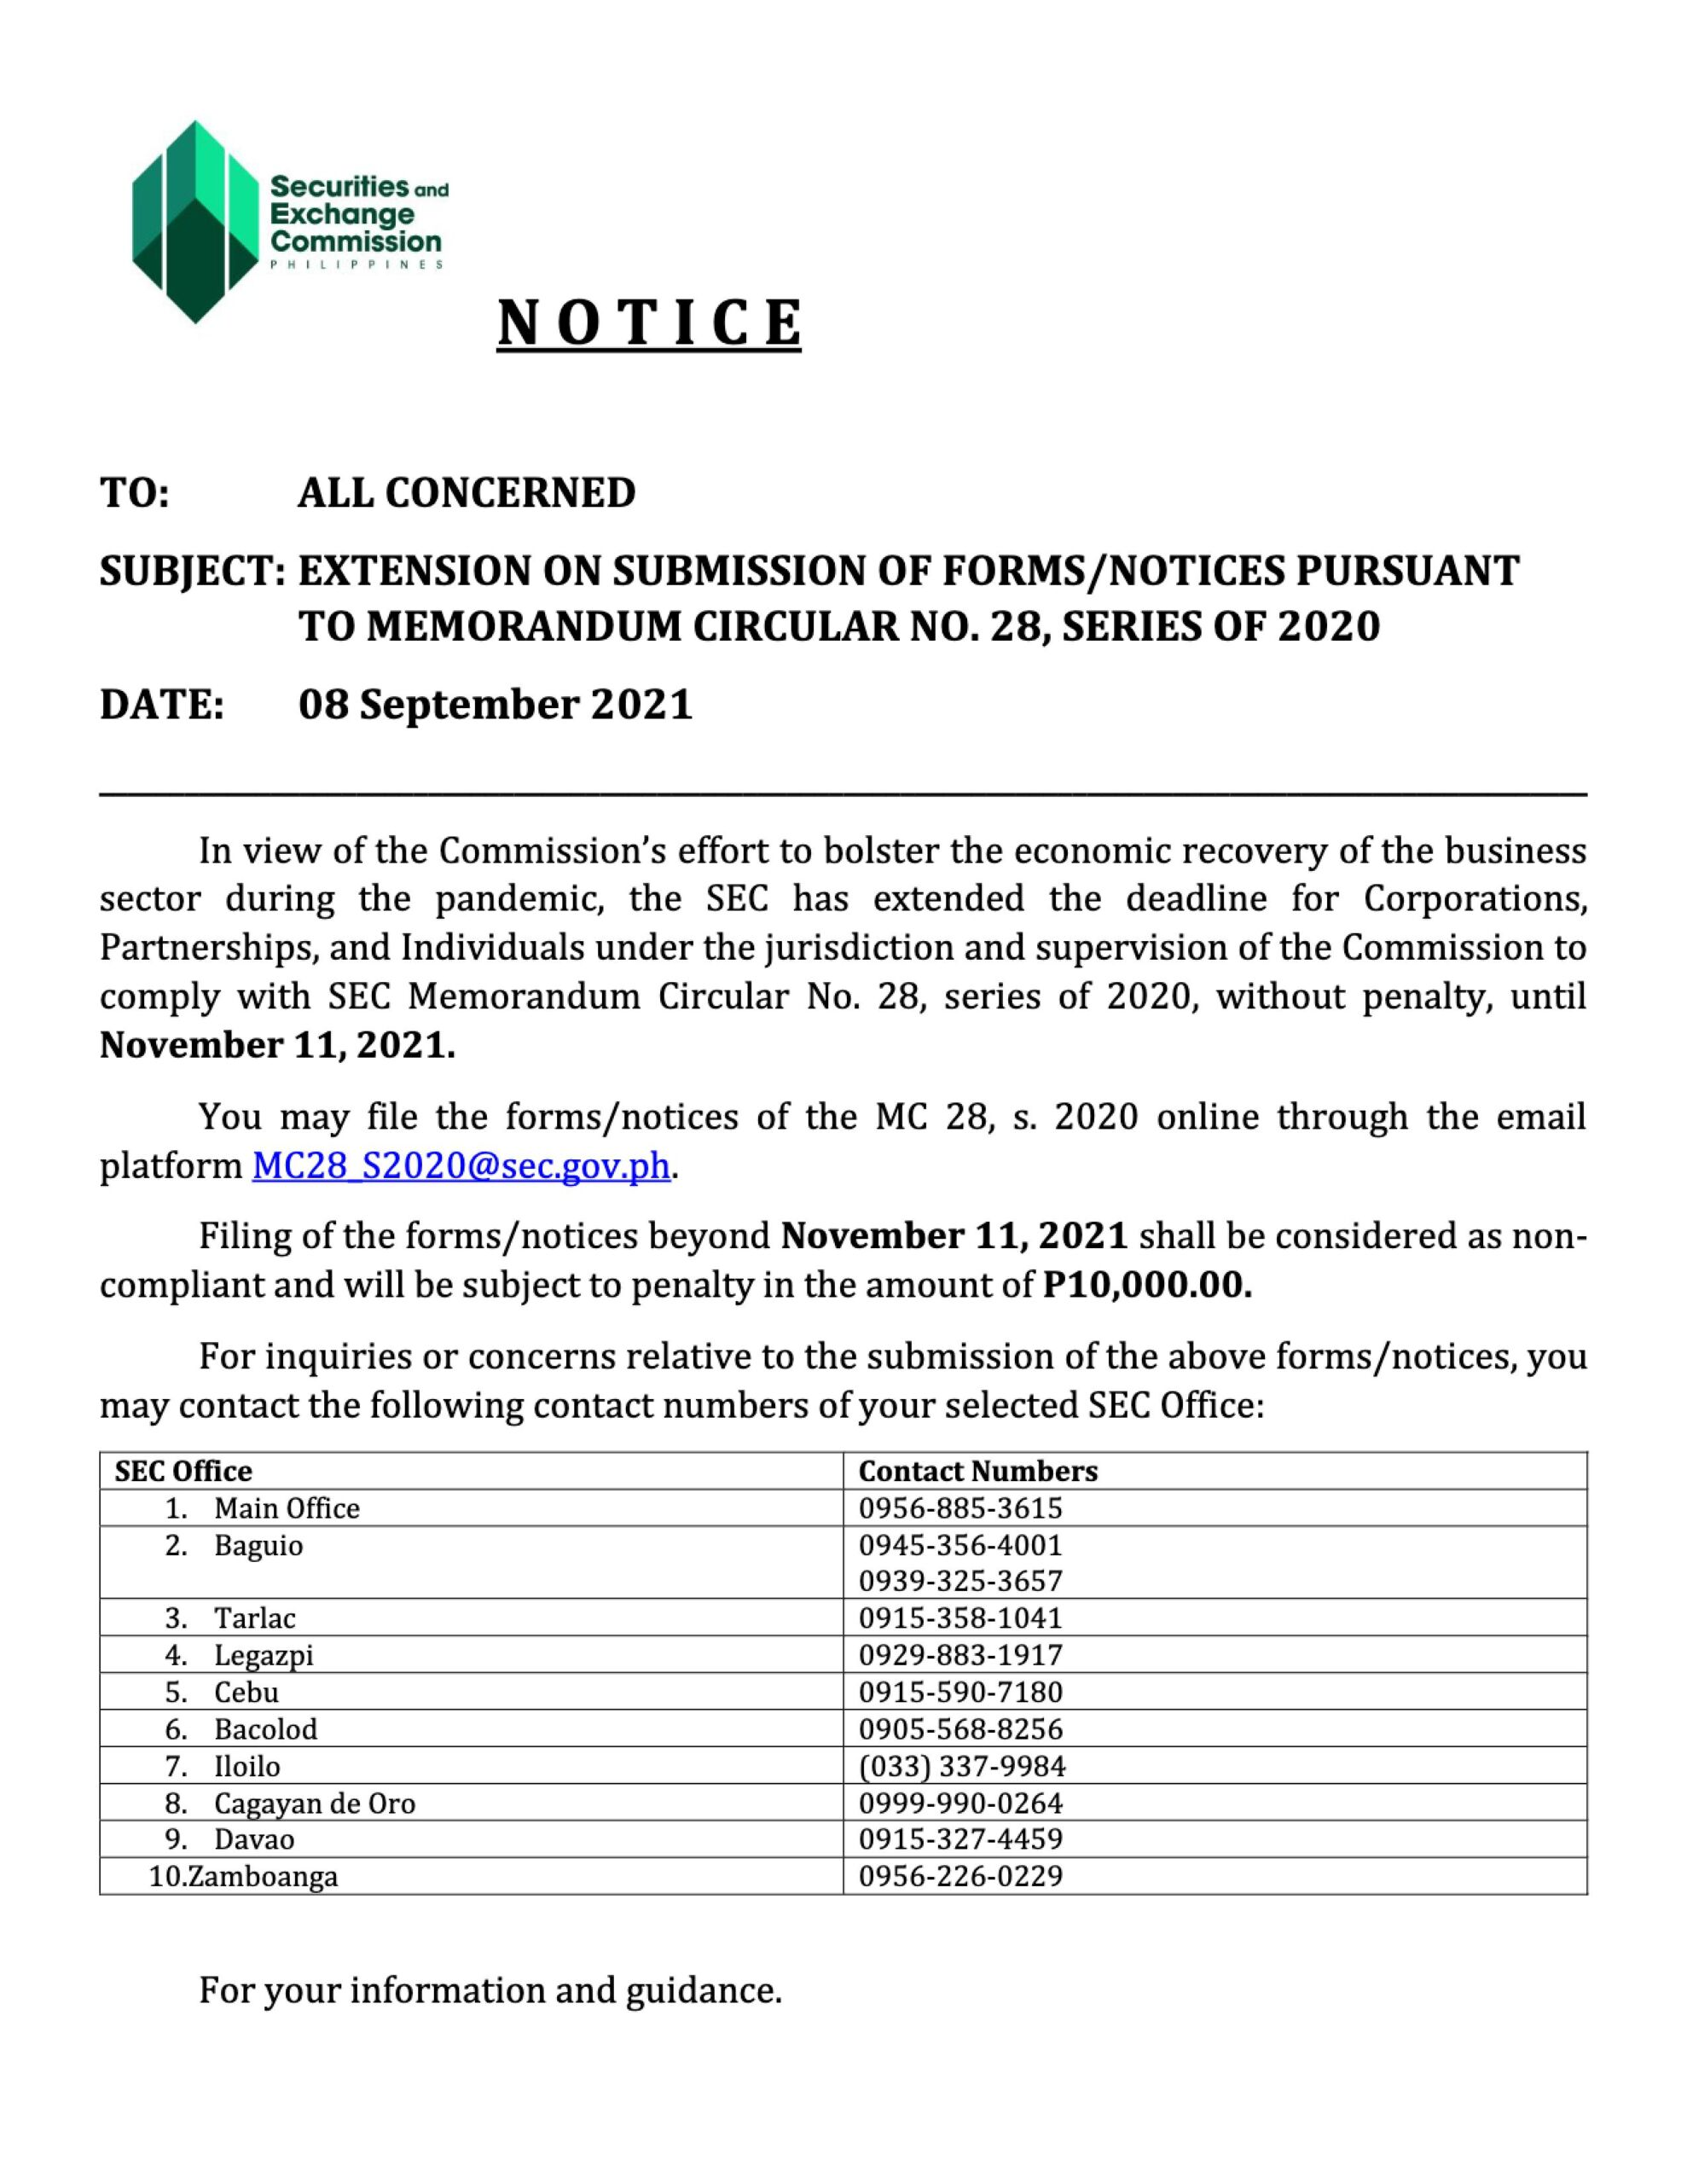 EXTENSION ON SUBMISSION OF FORMS_NOTICES PURSUANT TO MEMORANDUM CIRCULAR NO. 28, SERIES OF 2020 - Securities and Exchange Commission